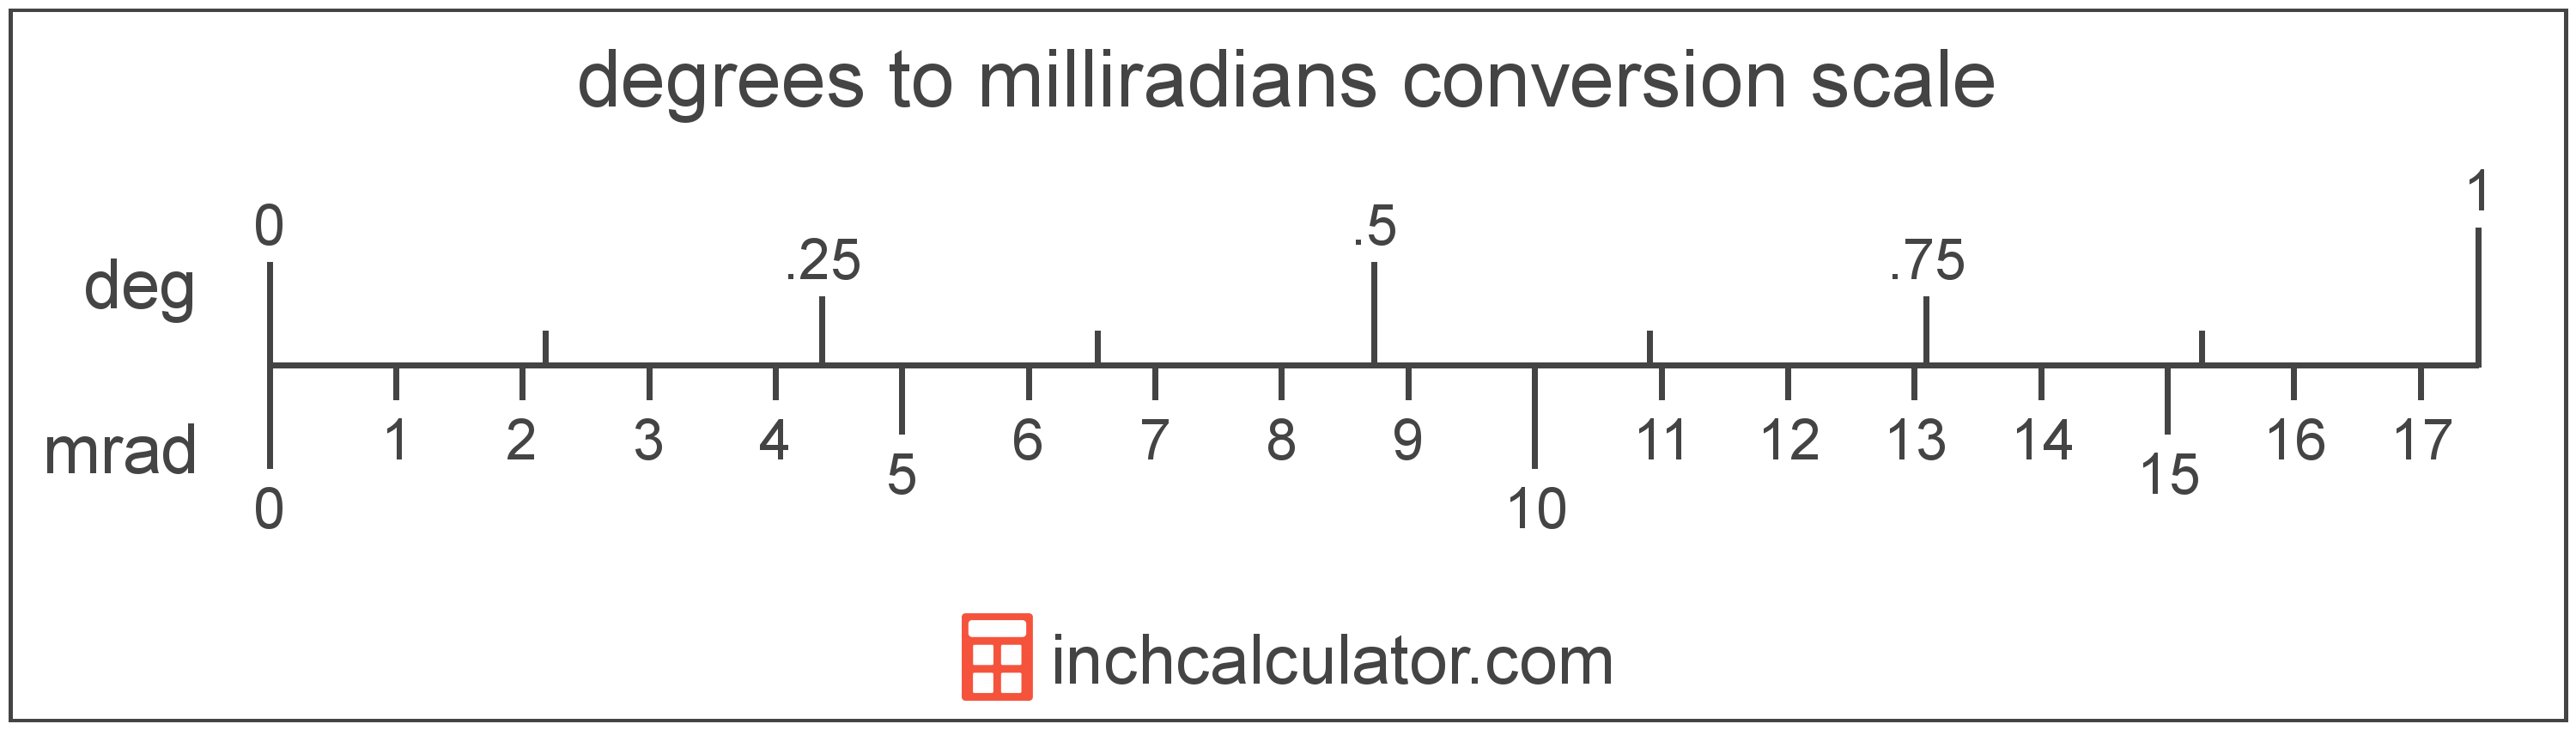 conversion scale showing milliradians and equivalent degrees angle values